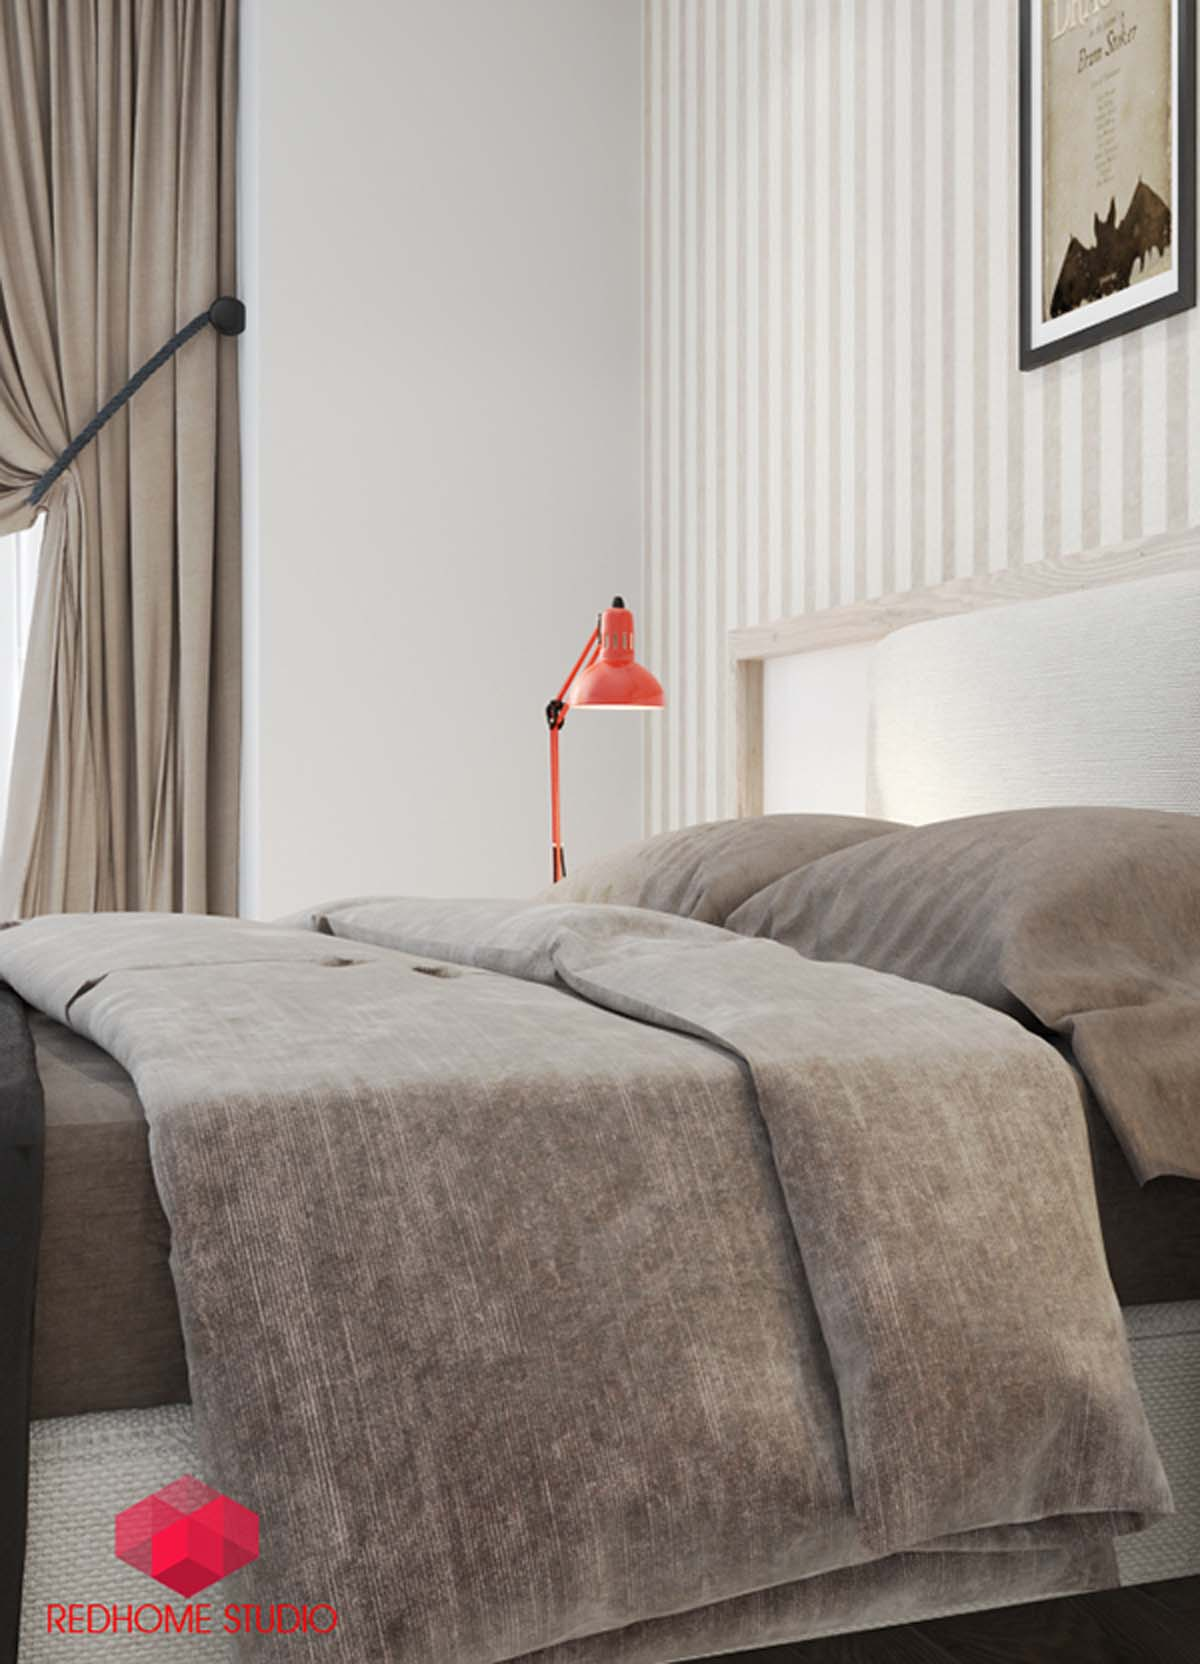 3. The neutral yet charismatic color shade of this bedroom by RedHome Studio